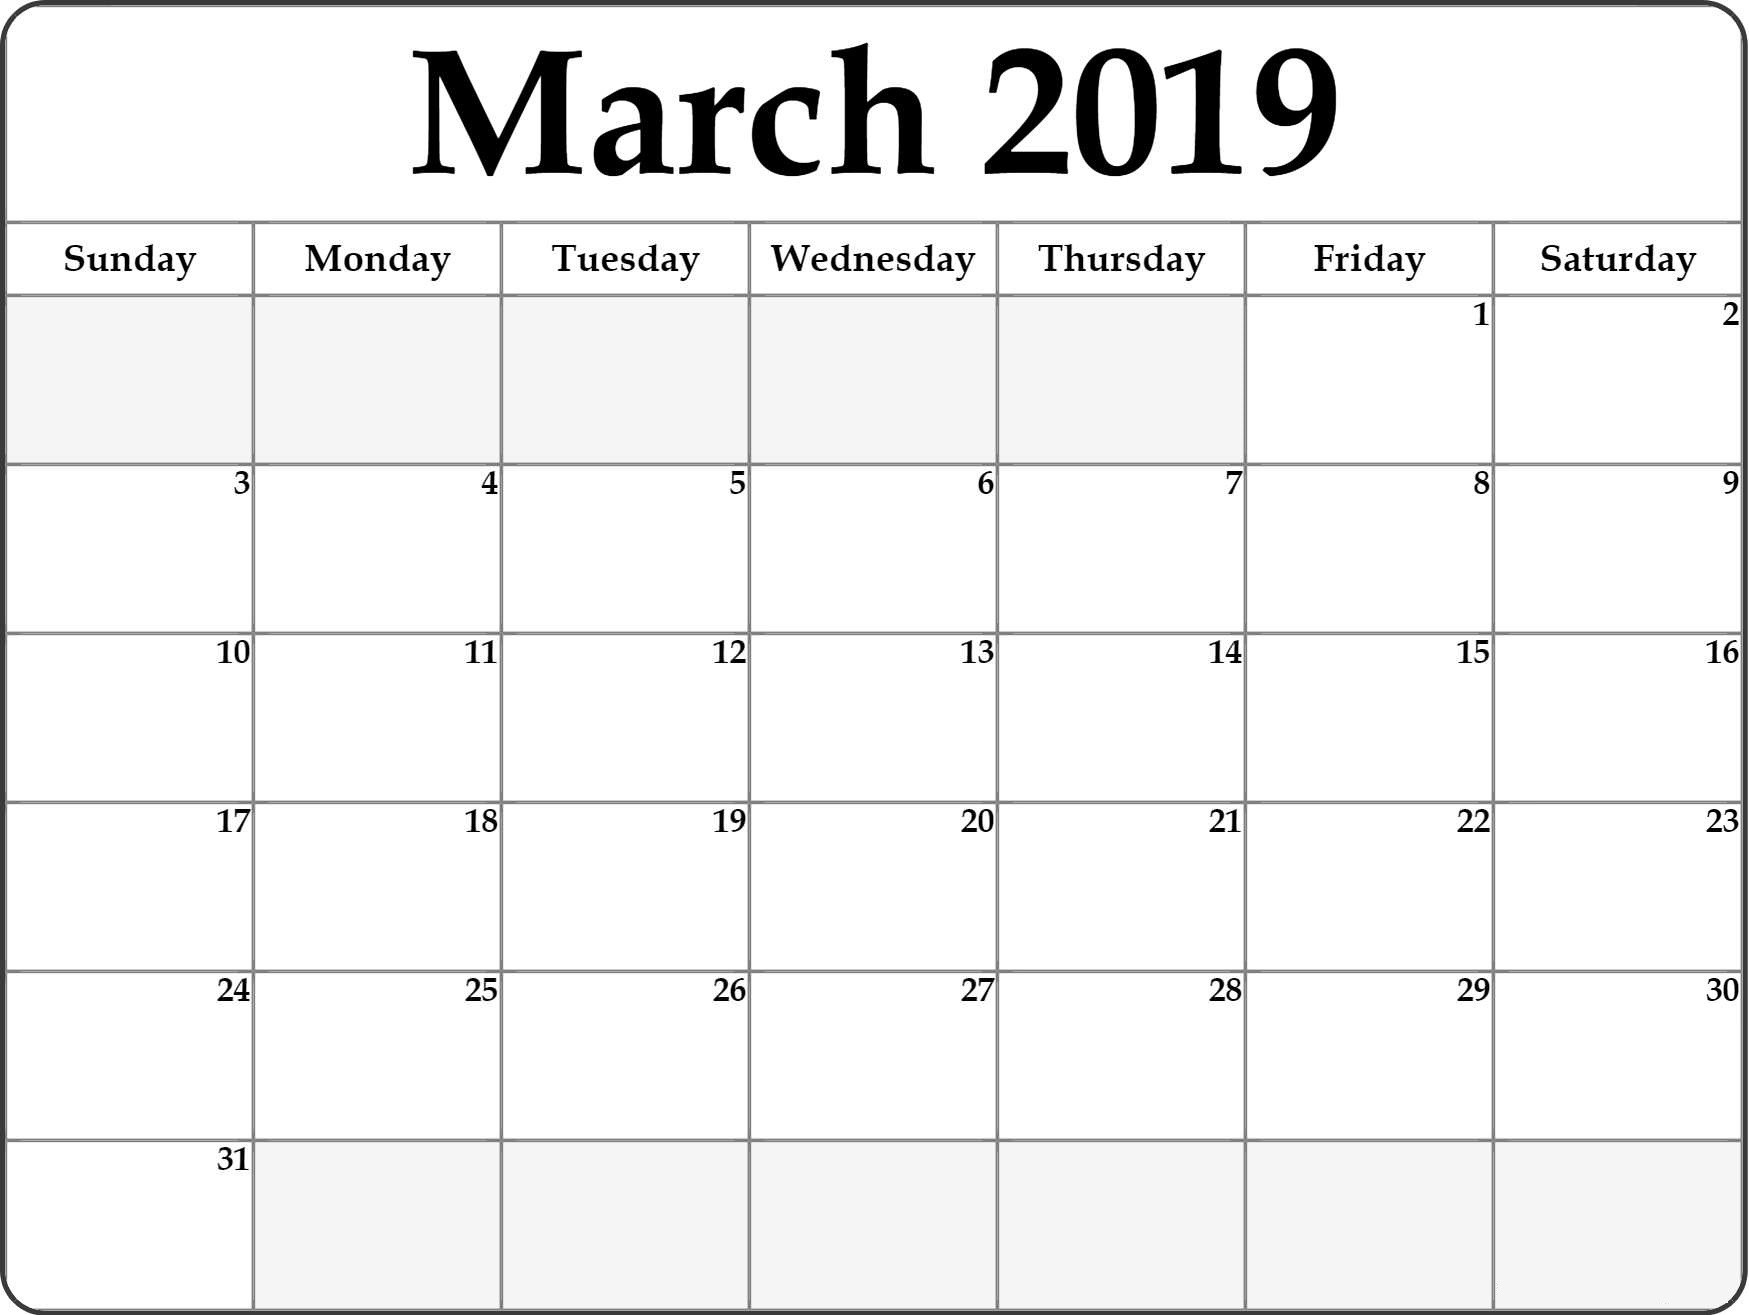 Blank March 2019 Calendar Printable - Free Printable-A Blank Page Of 31 Days Of A Calendar